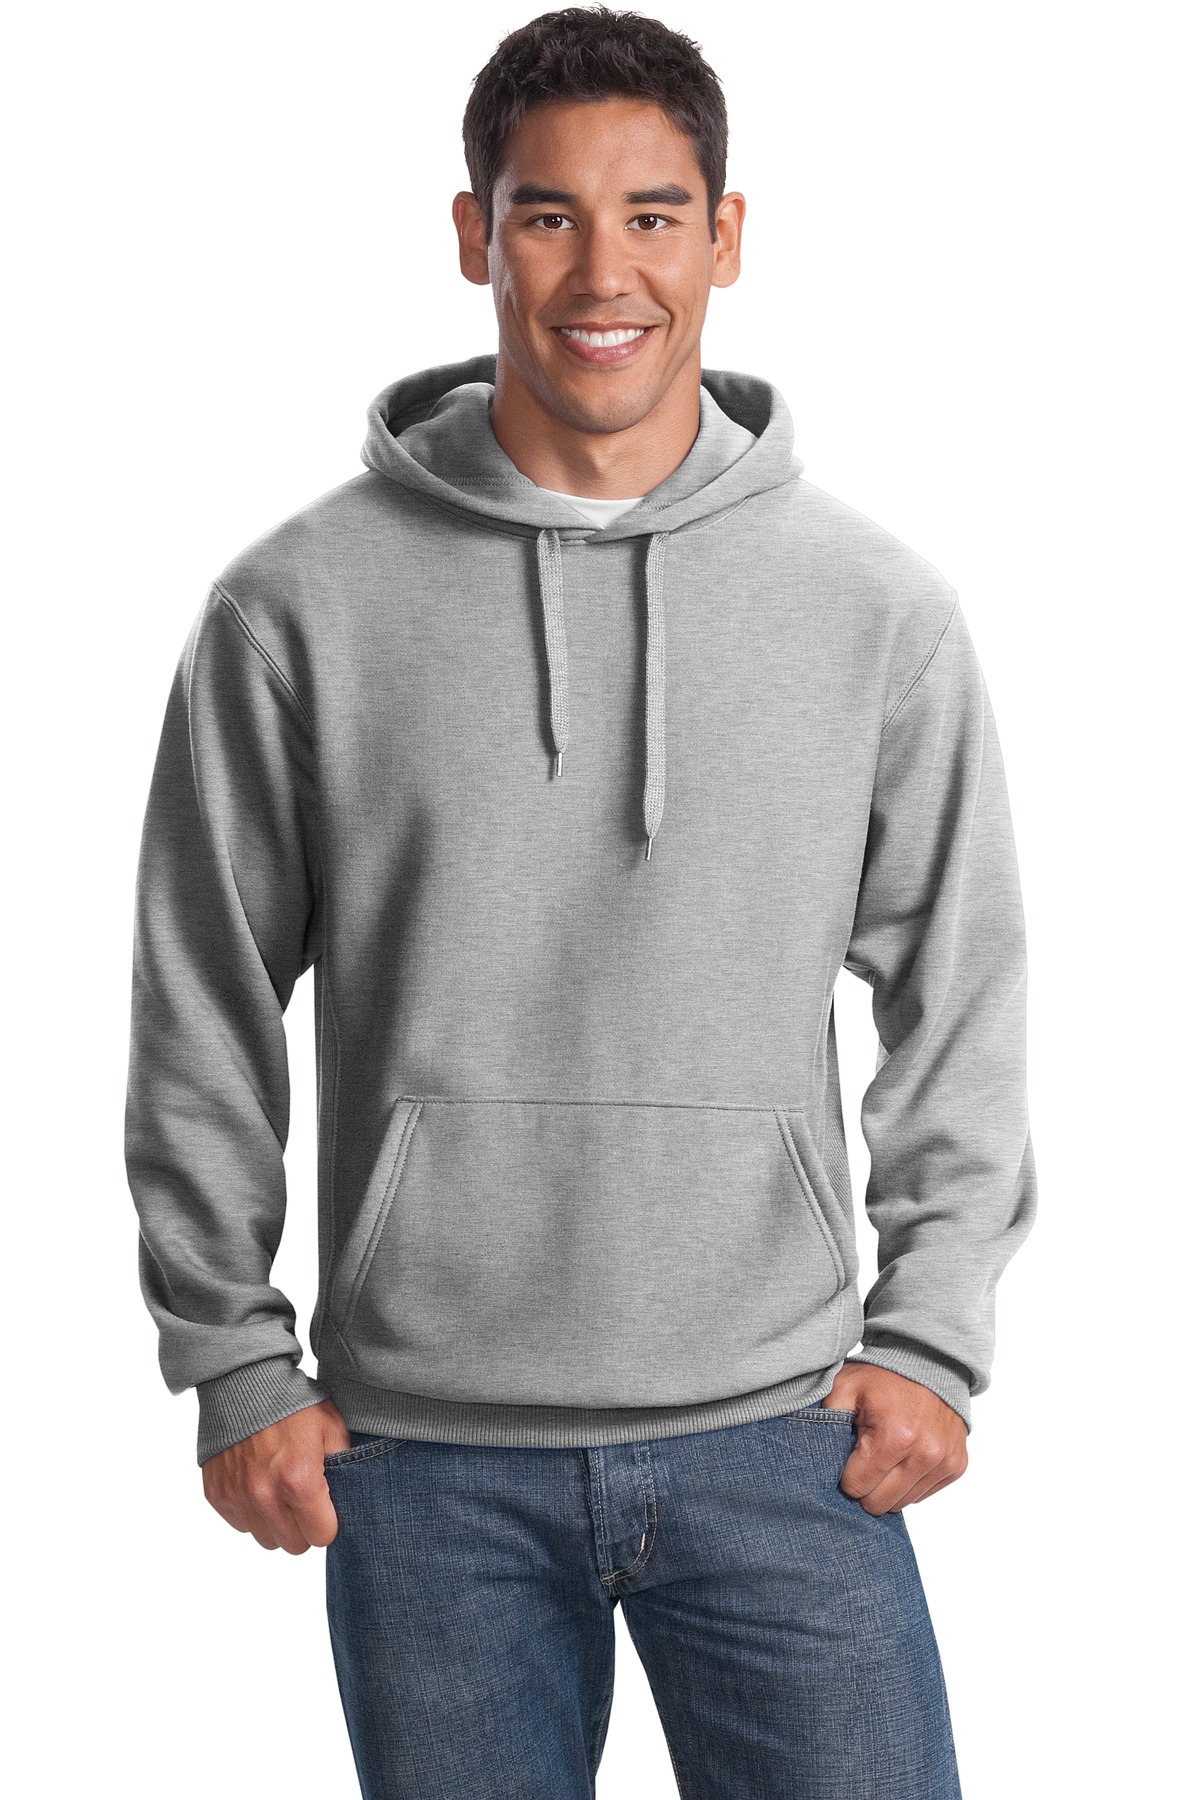 Sport-Tek Super Heavyweight Pullover Hooded Sweatshirt F28 - F281